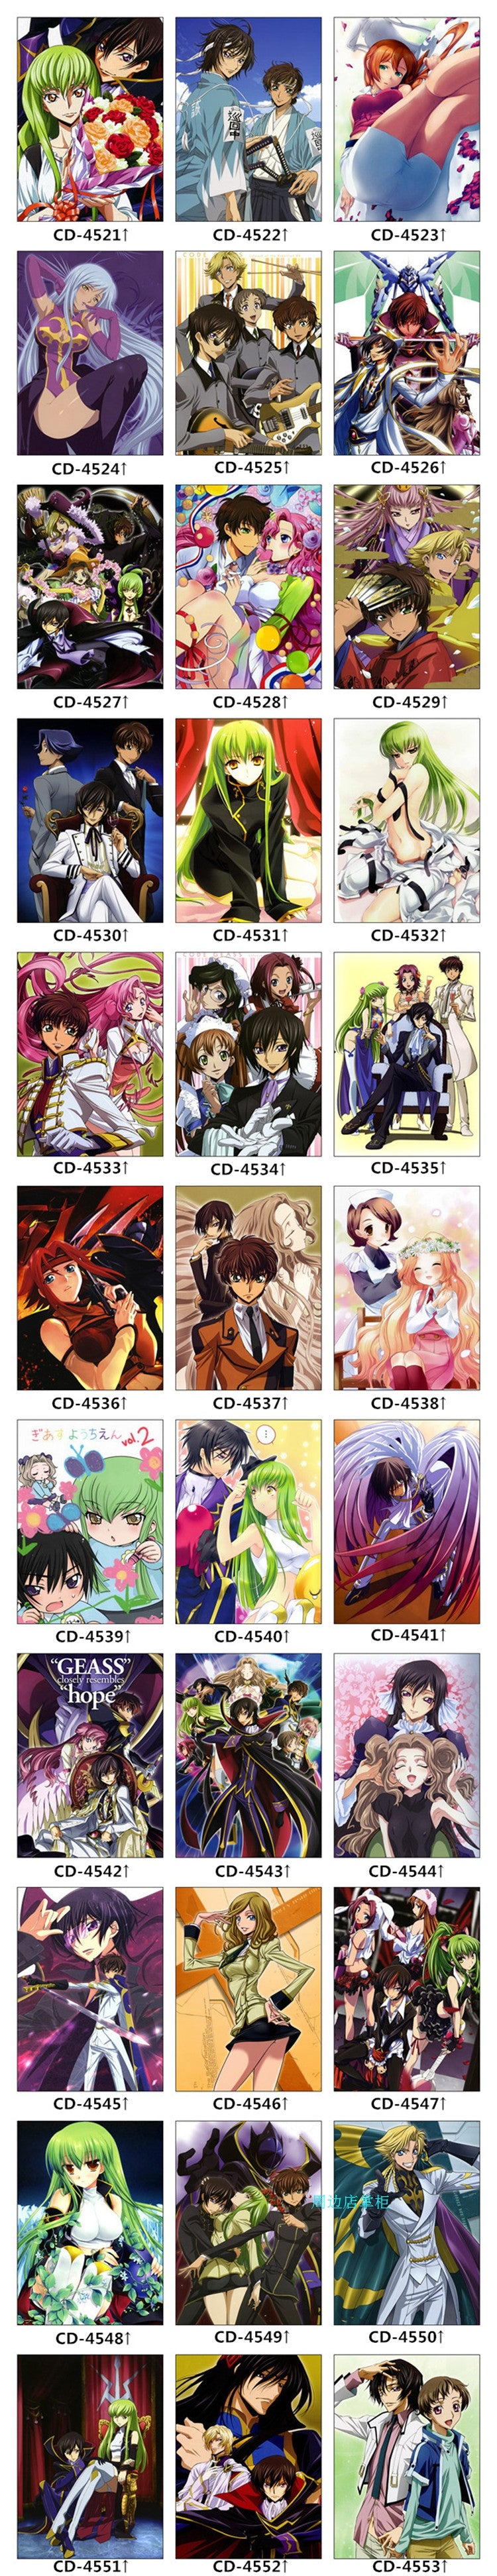 Code Geass Bed Sheets Blnakets Designs